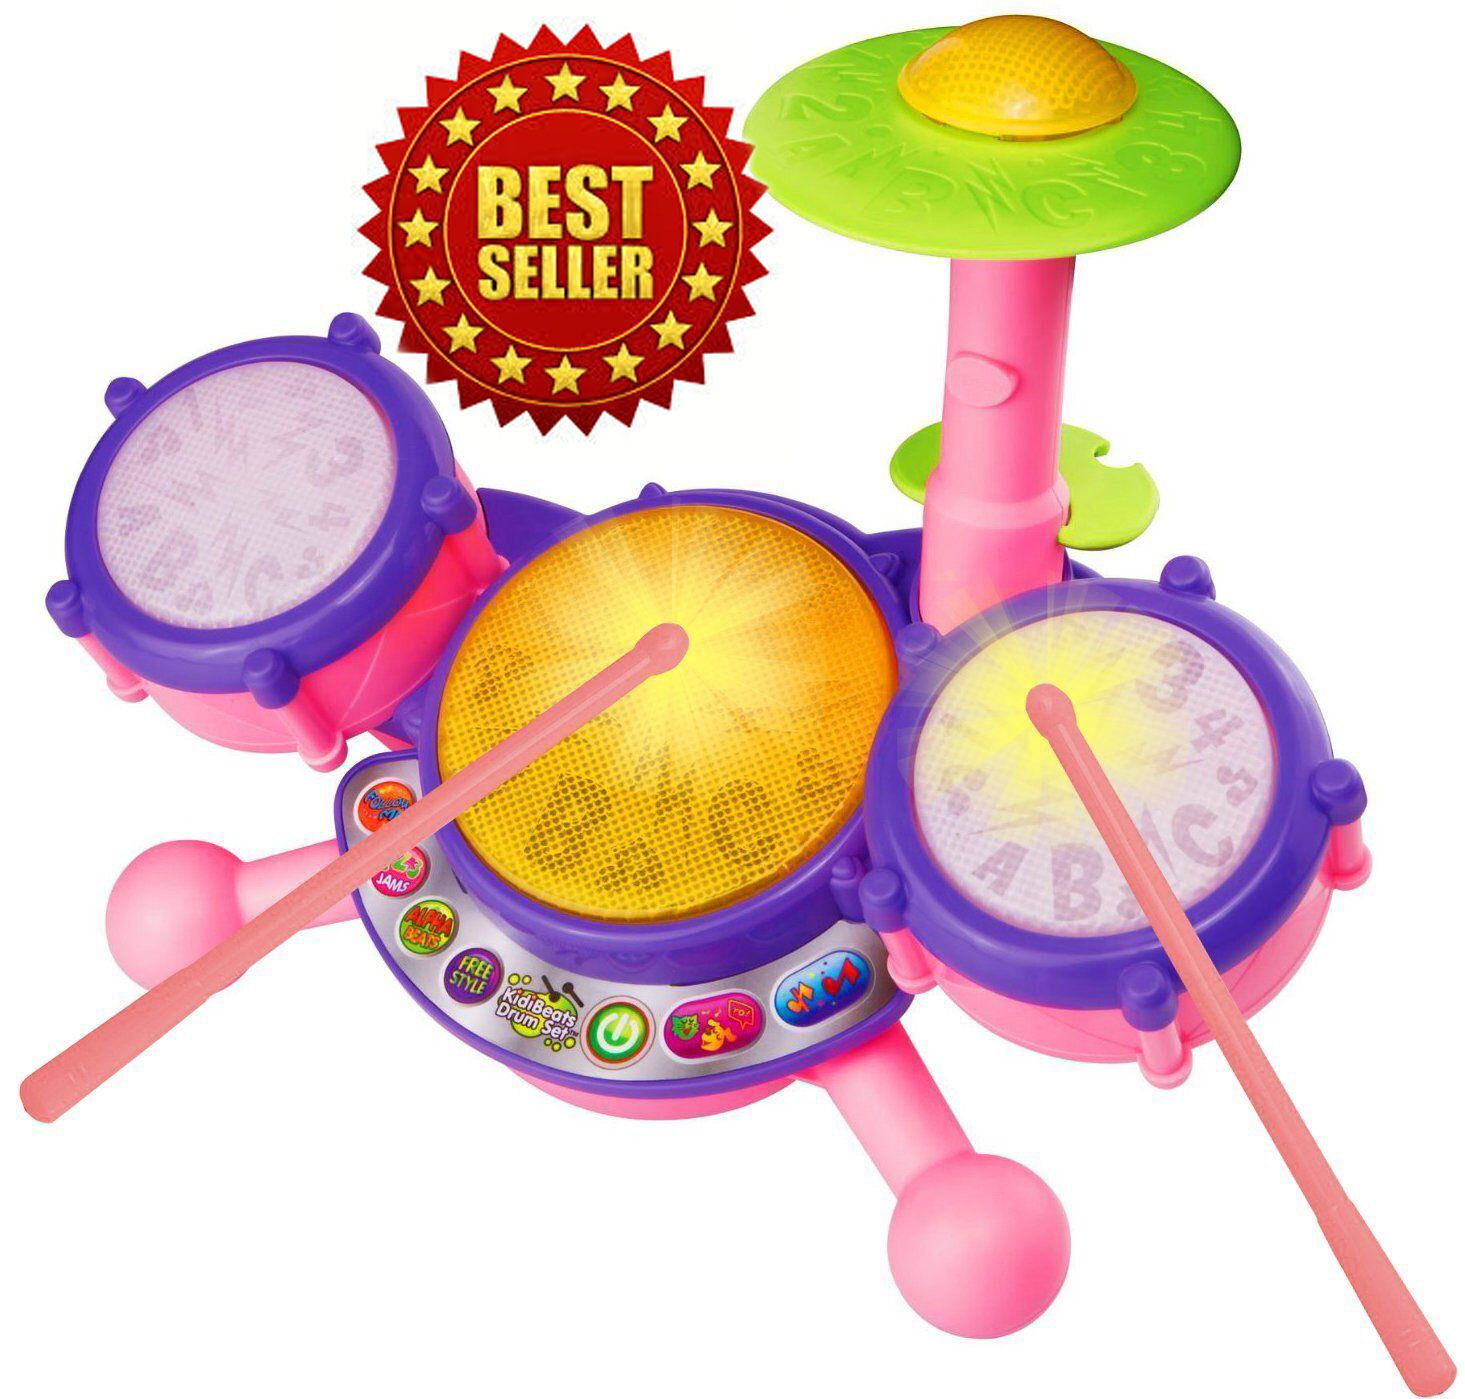 Vtech Kidibeats Pink Exclusive Drum Set Kids Music Girl